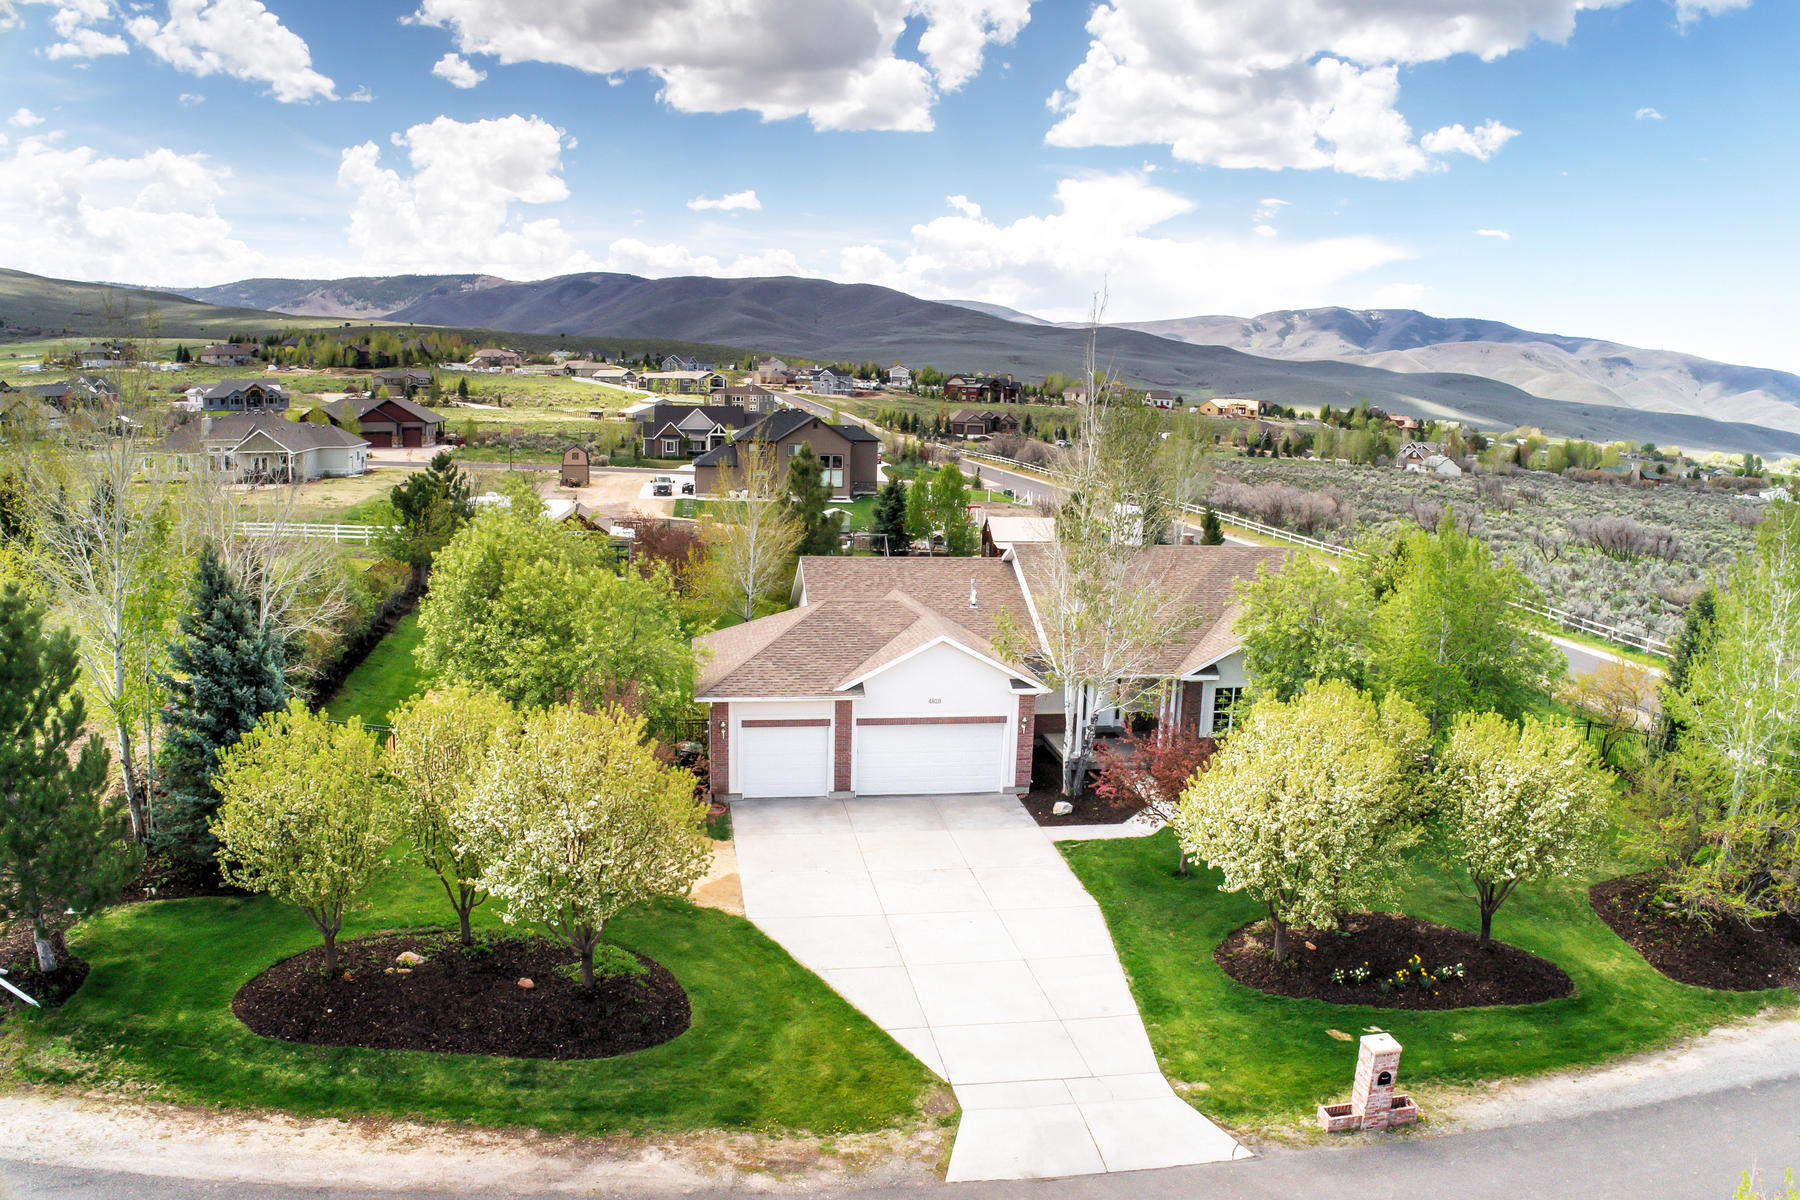 Single Family Homes for Sale at 1.11 Acre Horse Property with Unobstructed Mountain Views 4828 East 1250 South, Heber, Utah 84032 United States